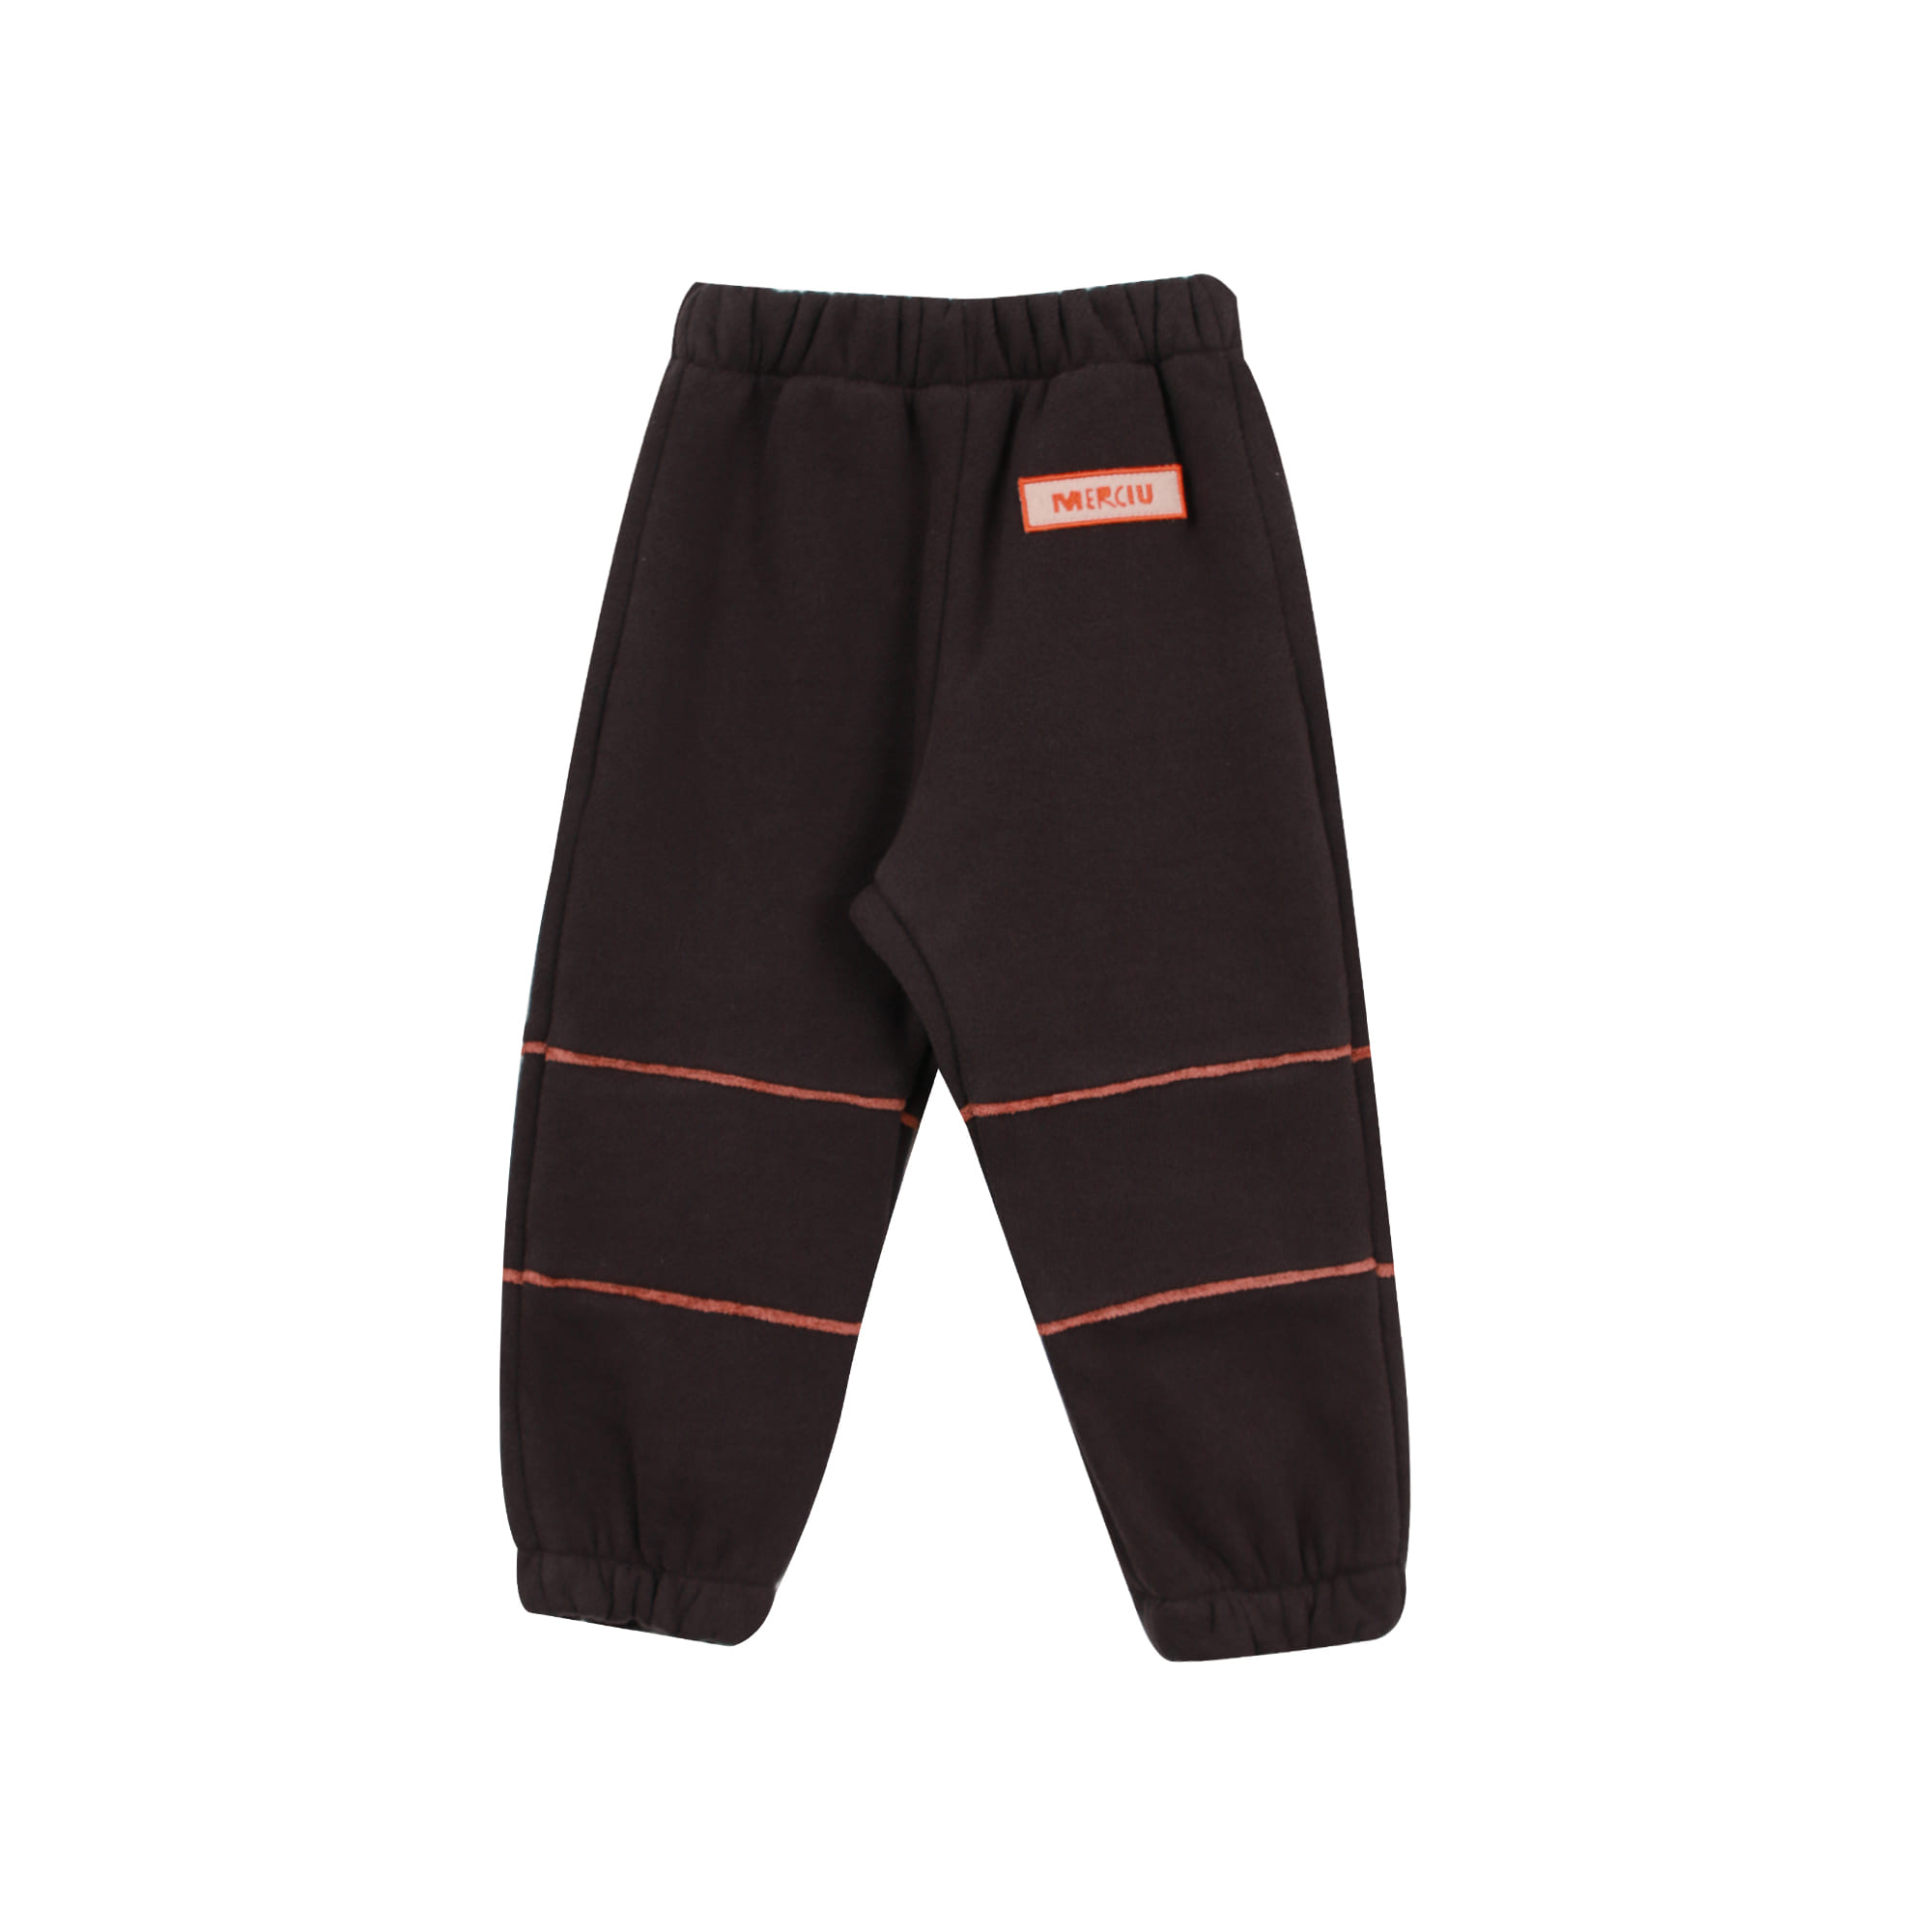 Piping jogger pants - charcoal (2차입고, 당일발송)